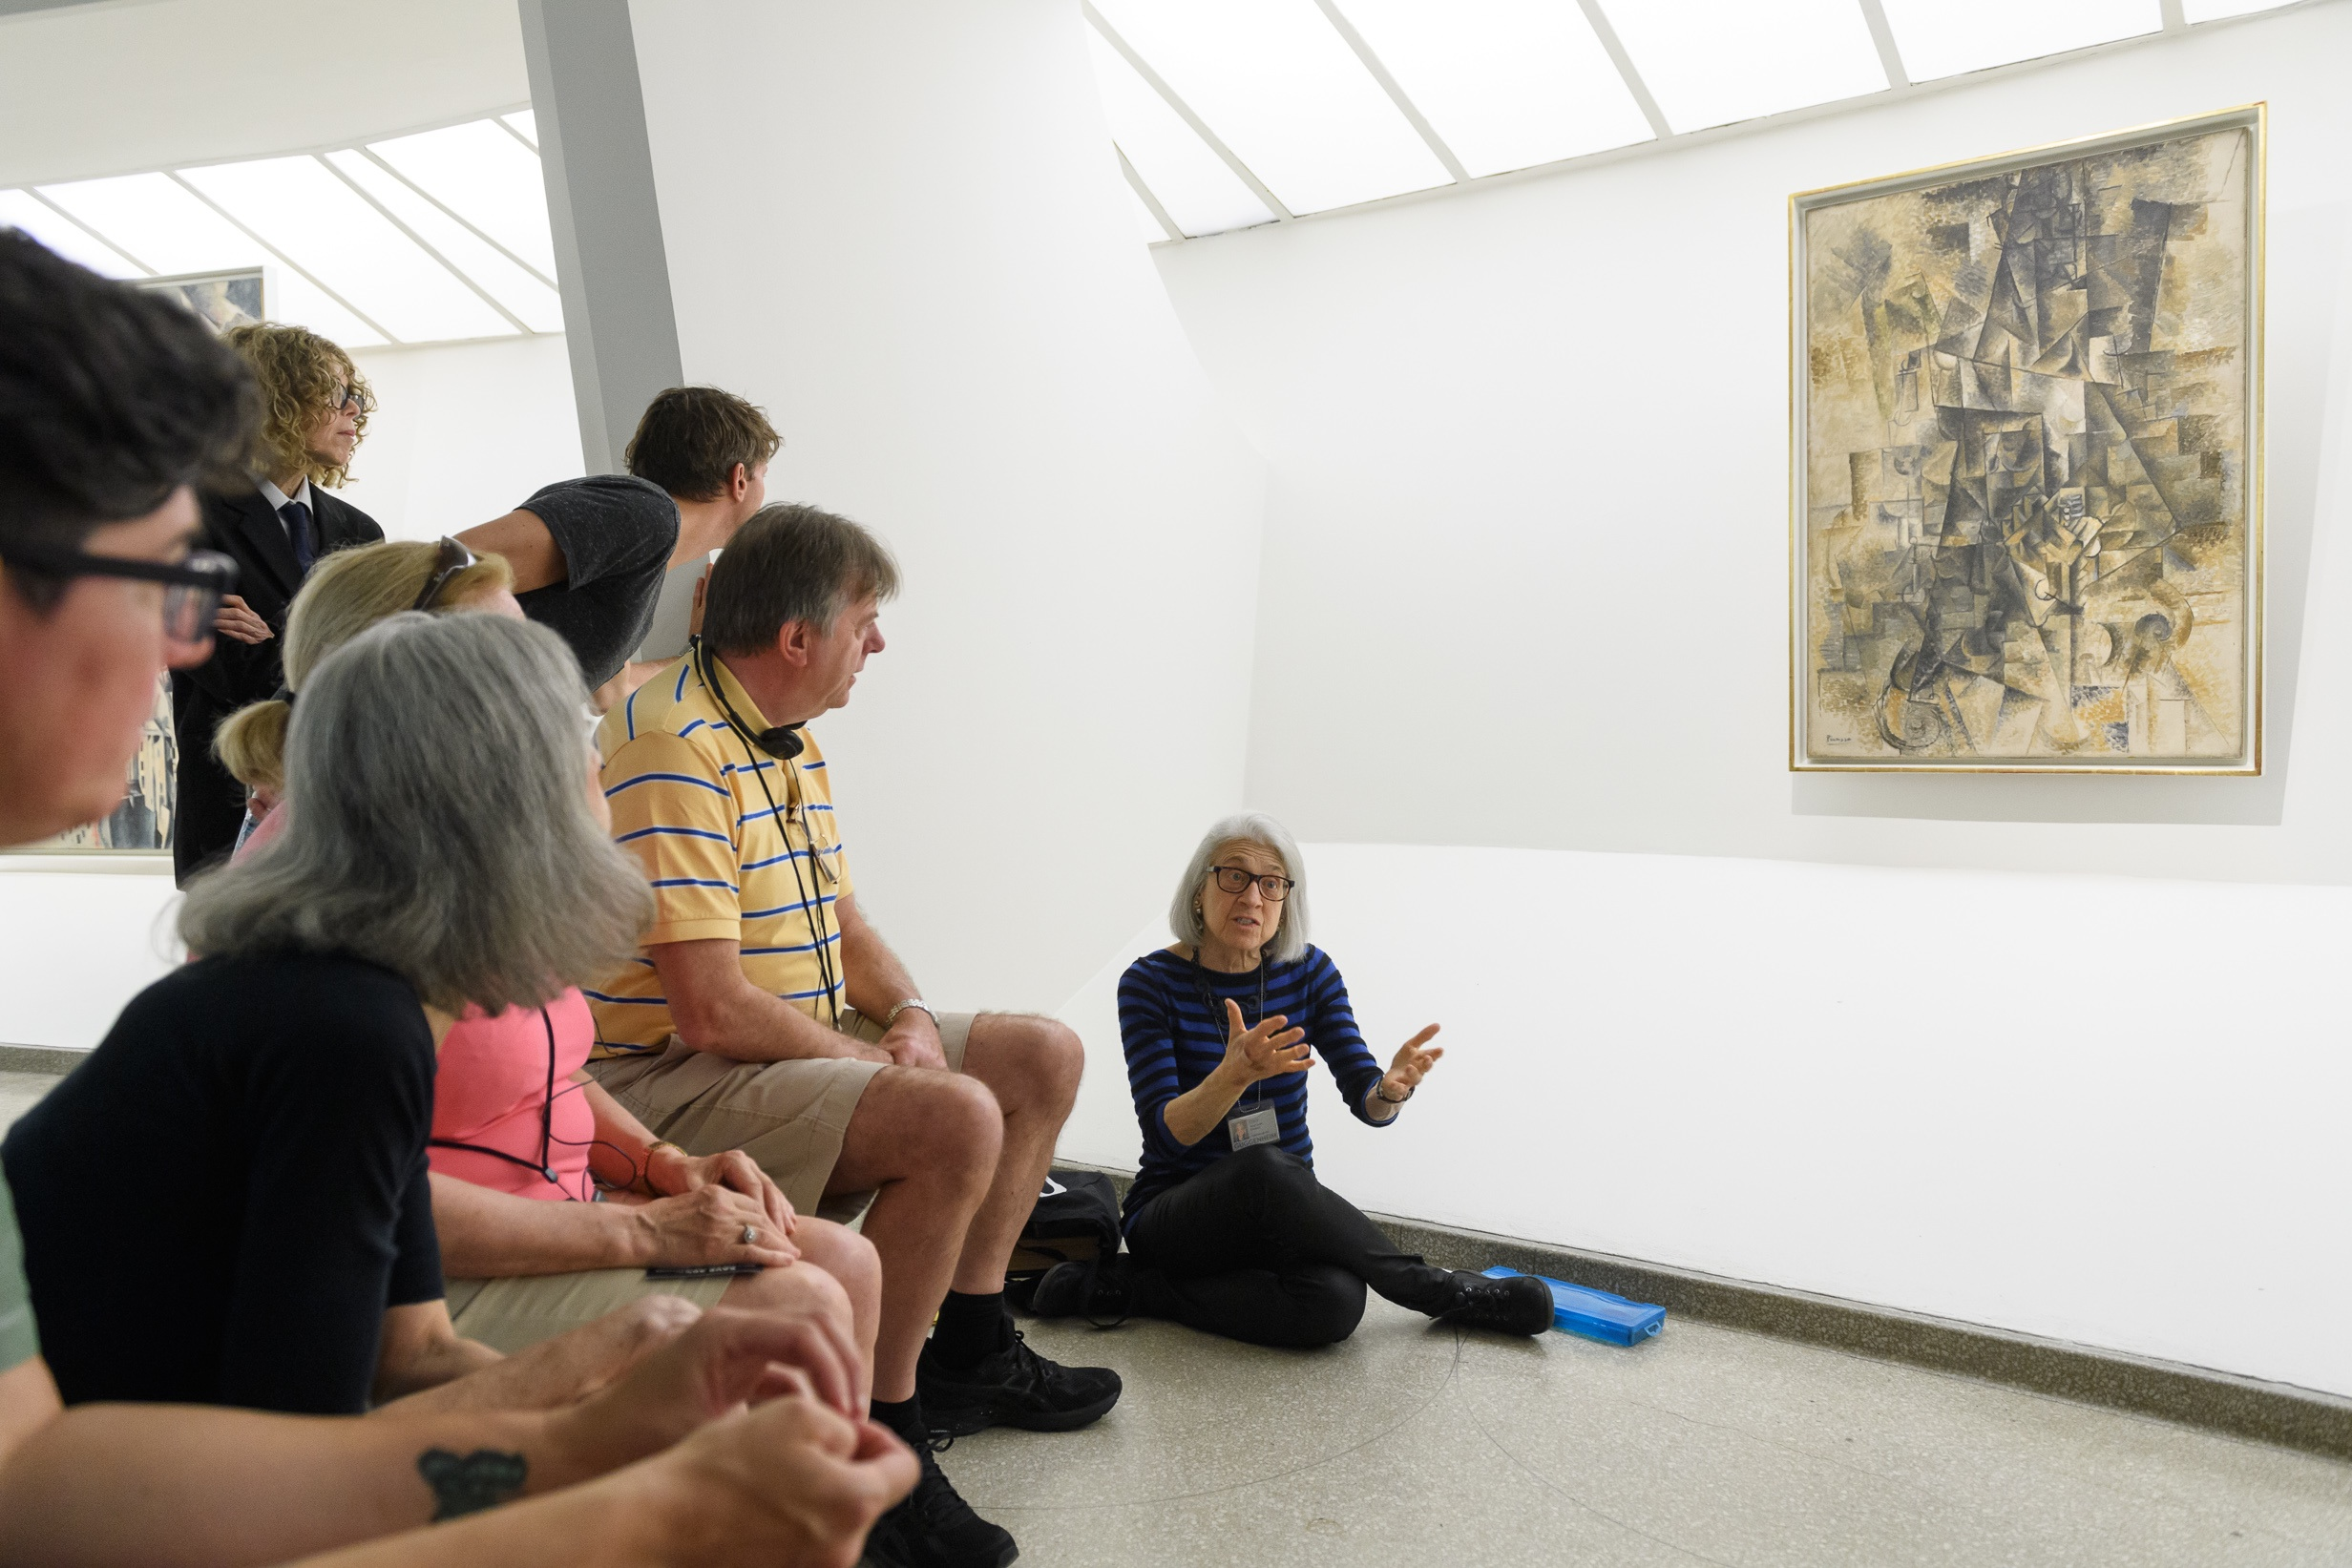 A One Hour, One Object tour led by educator Missy Lipsett (seated on the floor) focusing on Pablo Picasso's   Accordionist  .